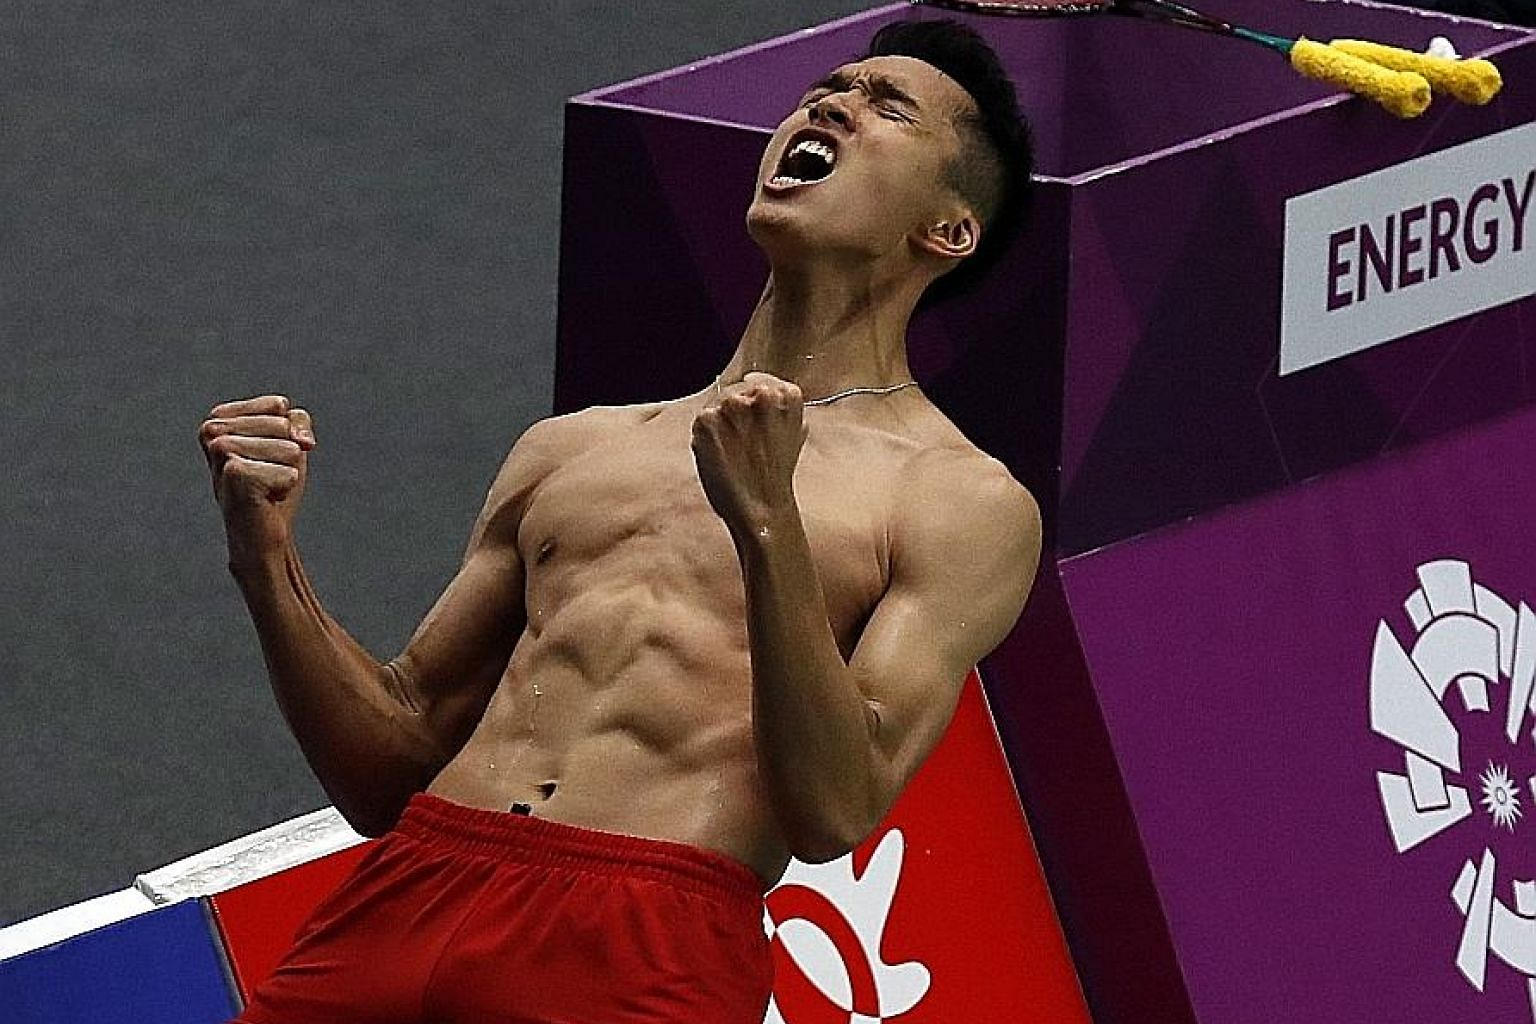 Jonatan Christie of Indonesia can't hide his joy after defeating Japan's Kenta Nishimoto 21-15, 15-21, 21-19 in the singles semi-finals yesterday.